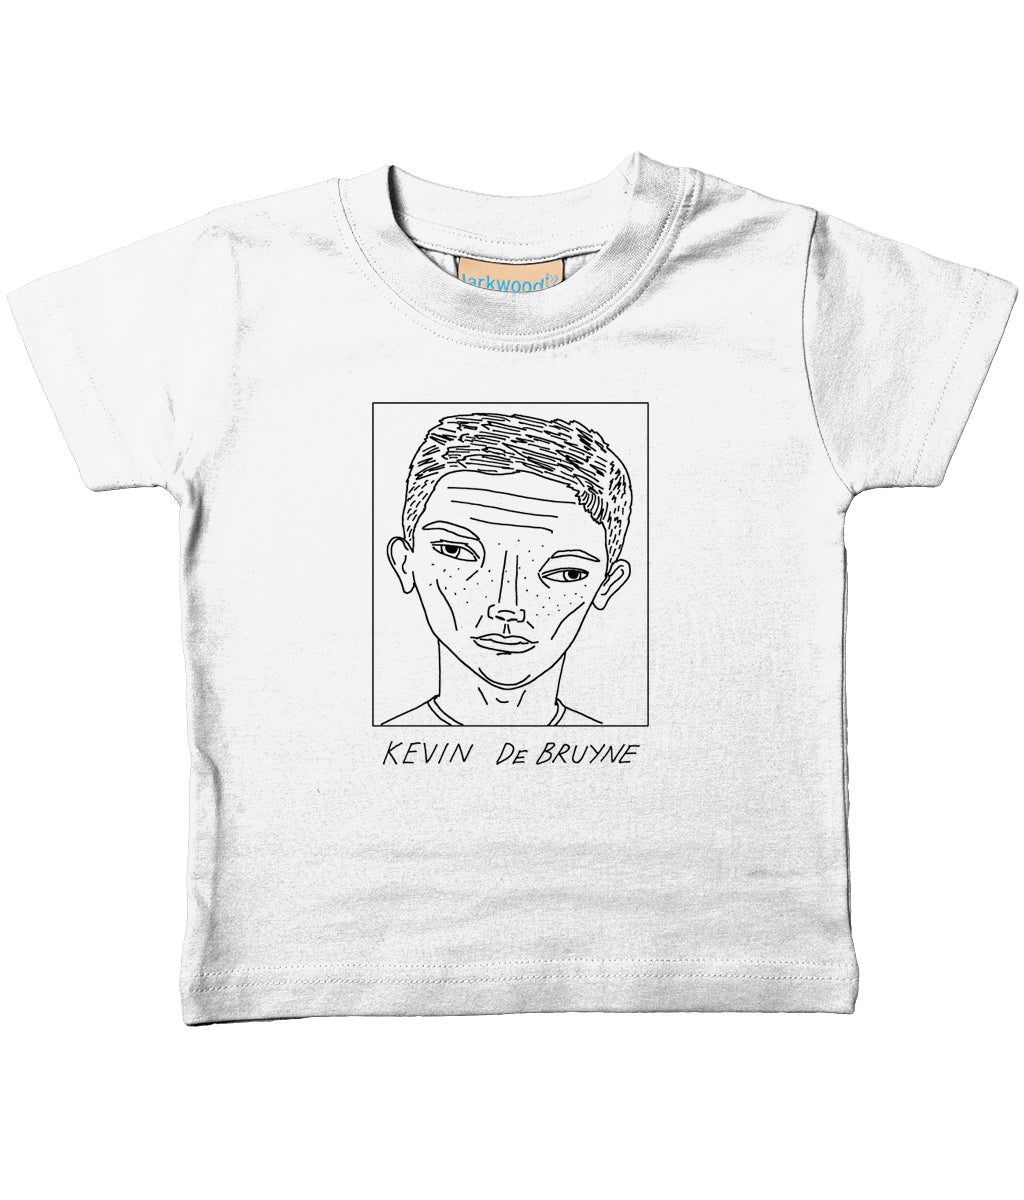 Badly Drawn Footballers - Baby / Toddler Organic T-Shirt - Kevin De Bruyne